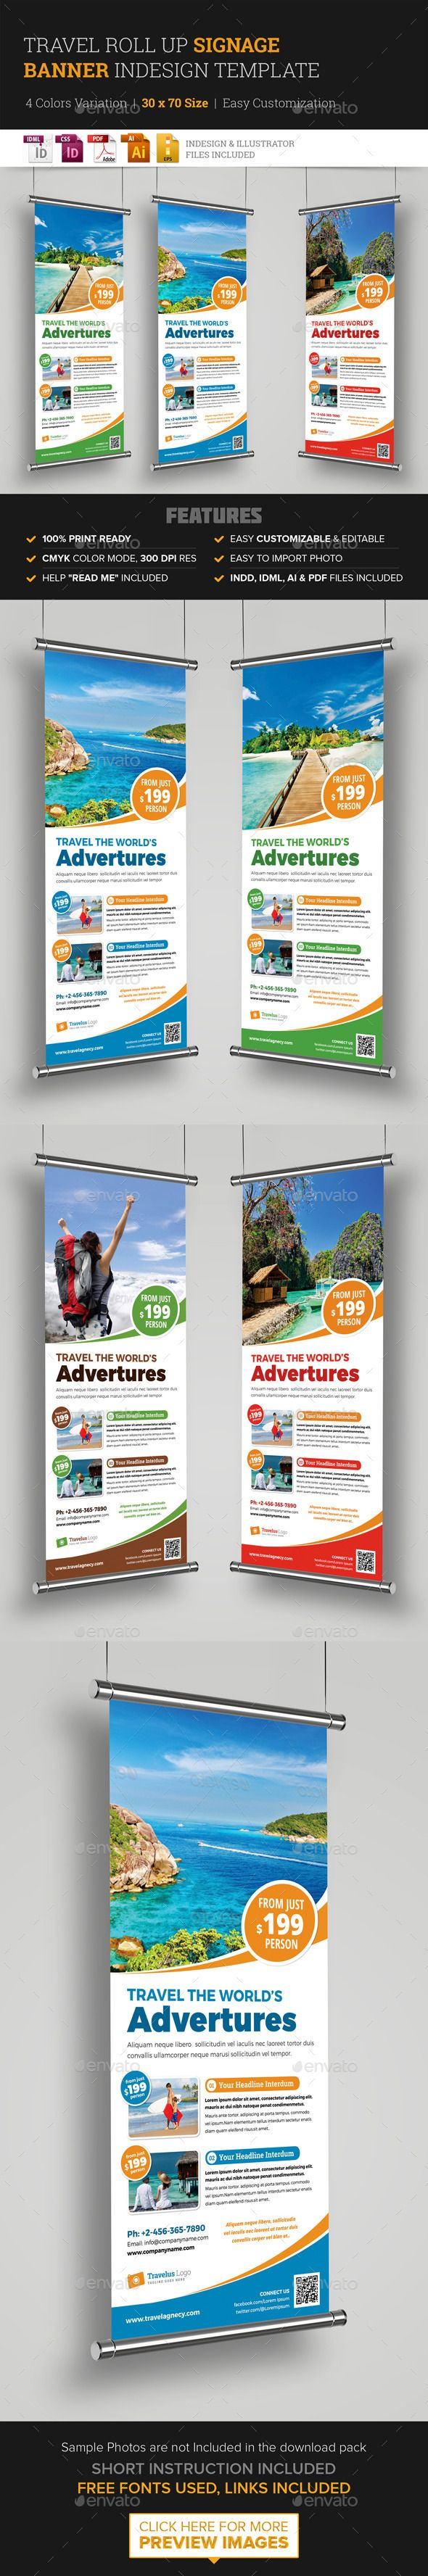 Travel Roll Up Banner Signage InDesign Template — Vector EPS #roll up signage ...